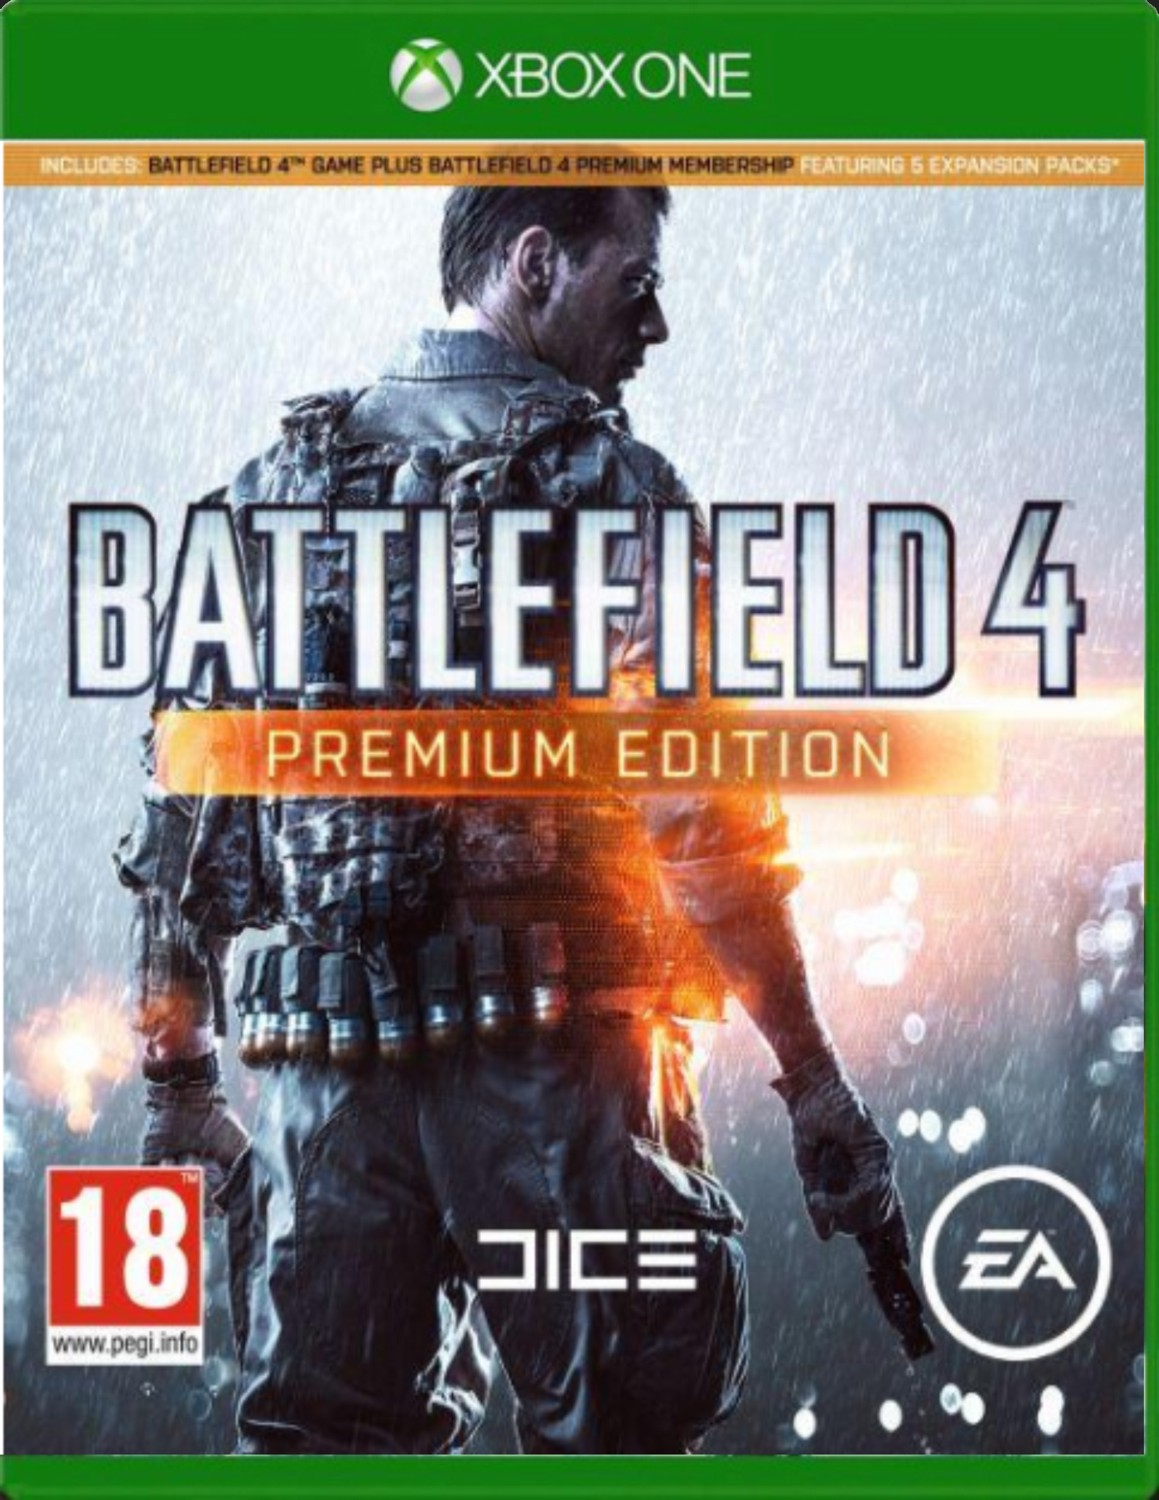 BATTLEFIELD 4 PREMIUM EDITION BUNDLE - Xone